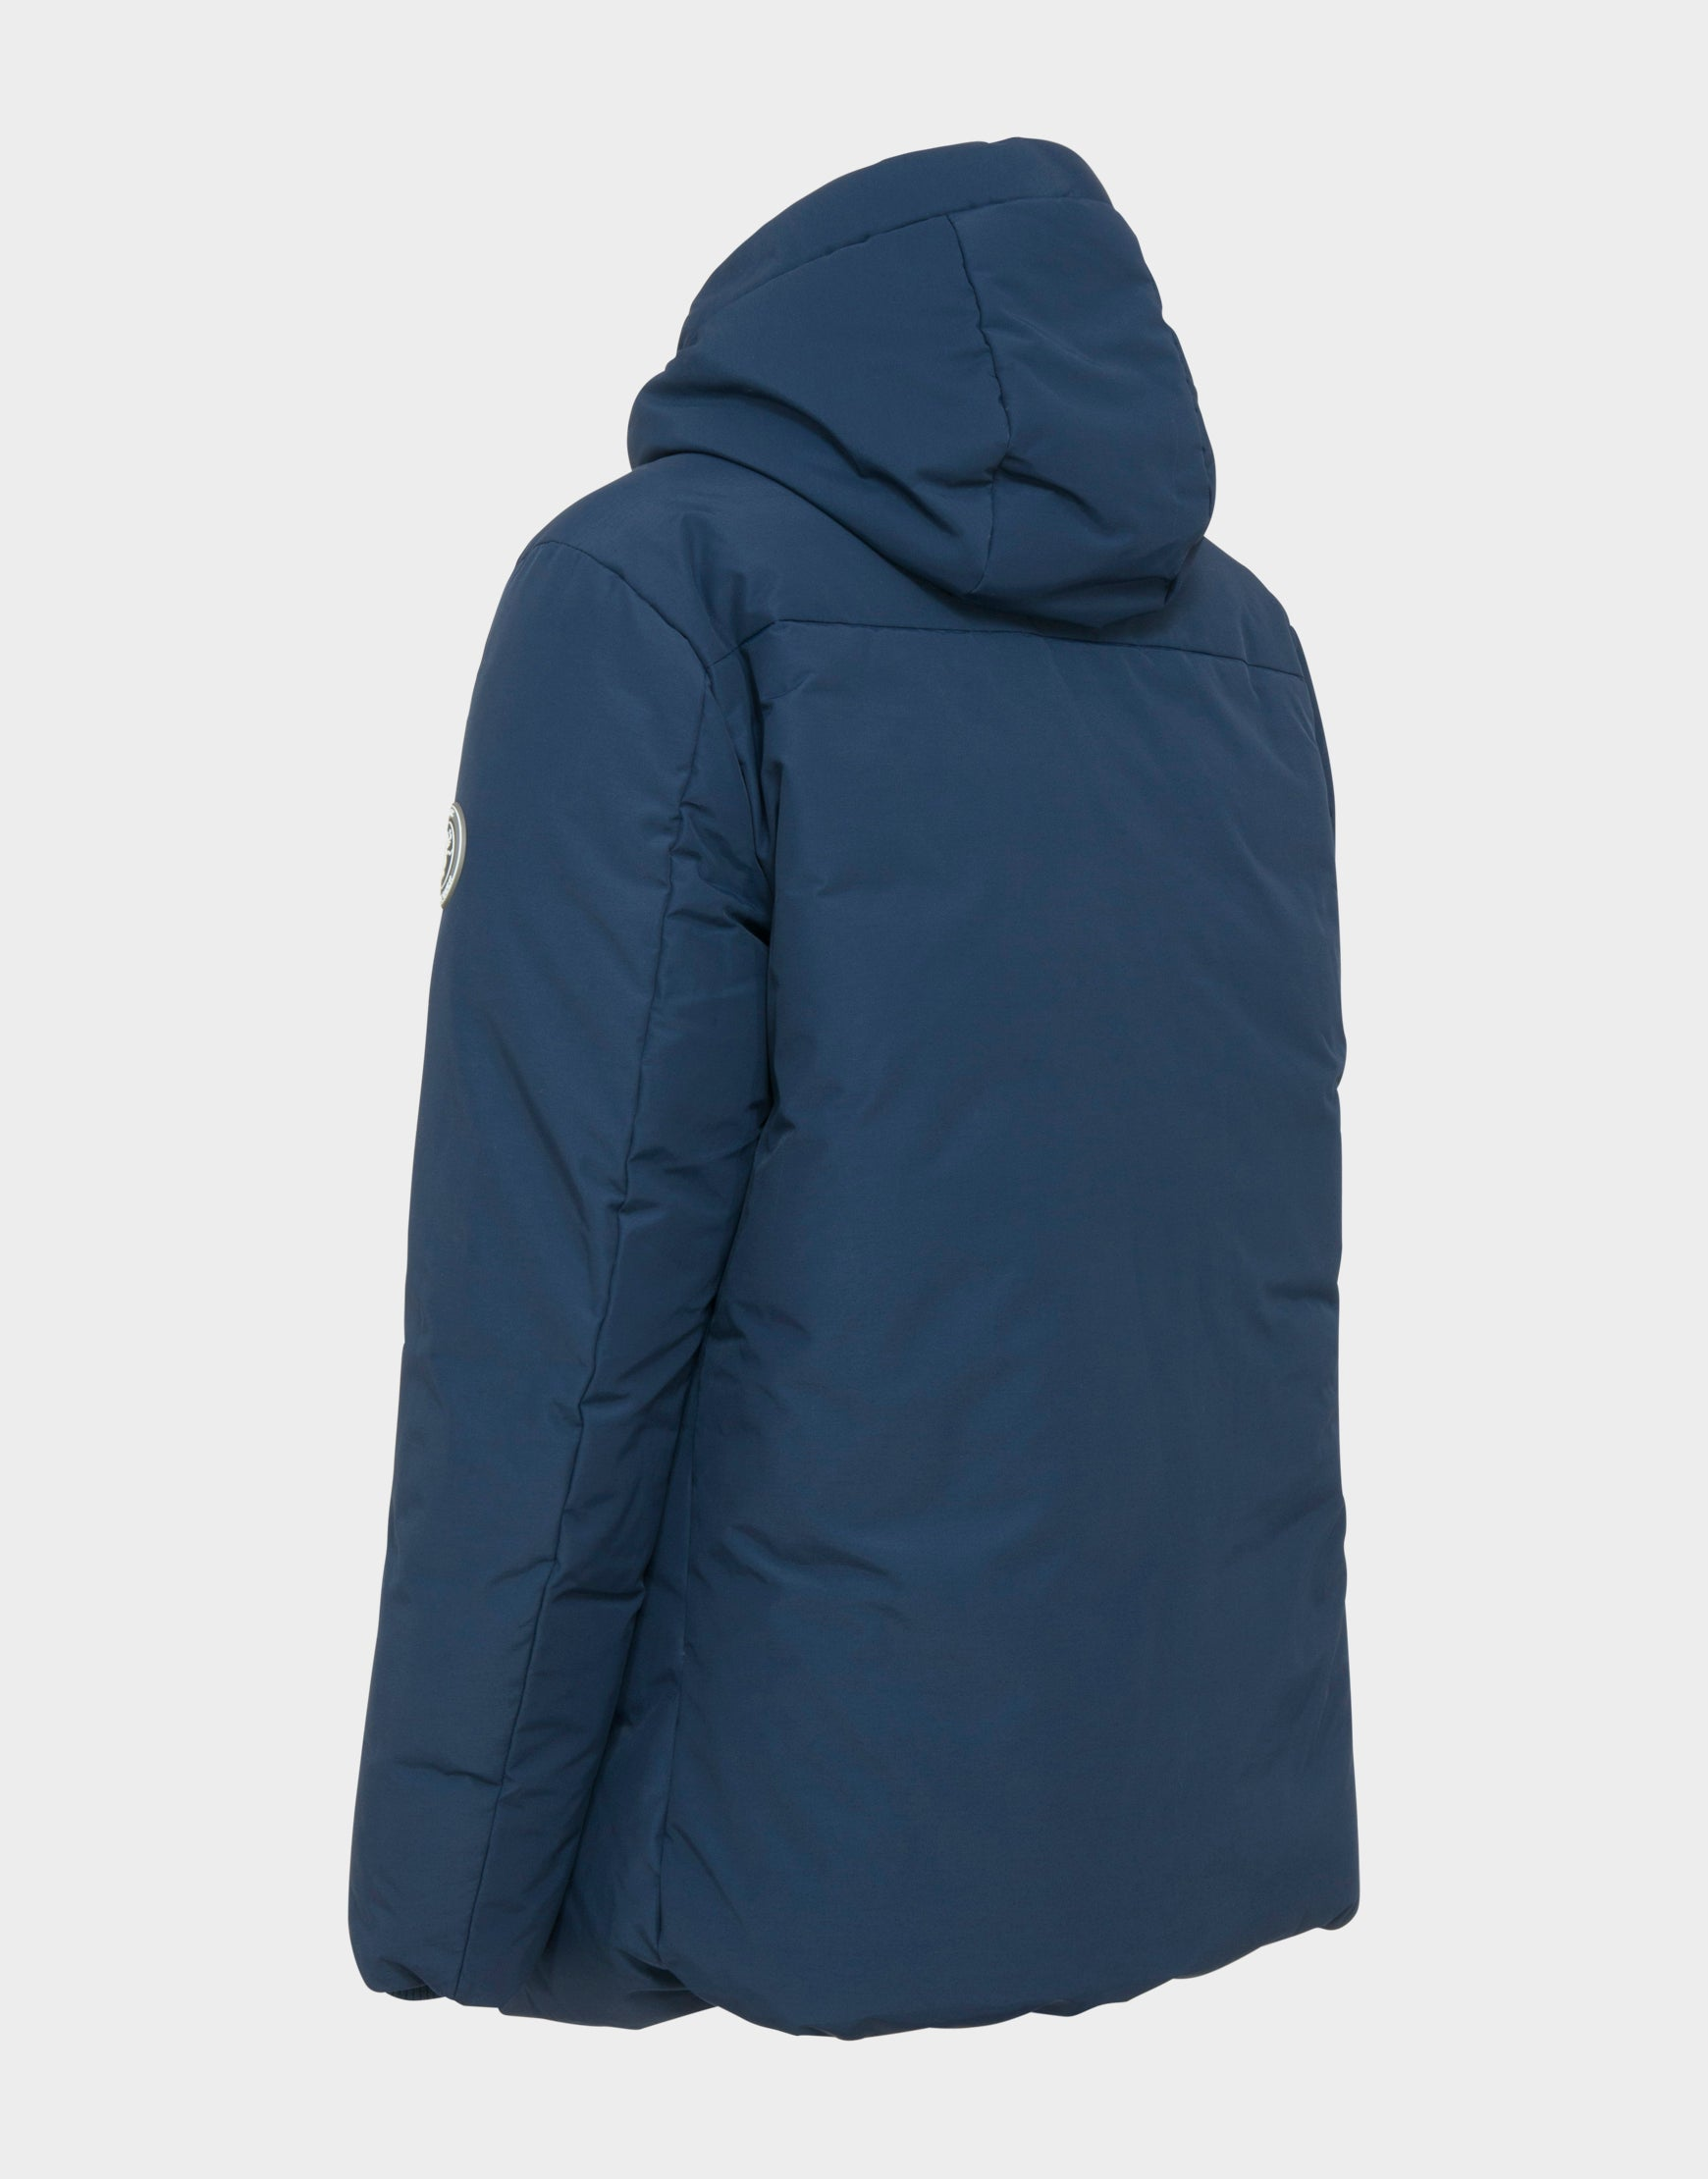 ff24f611cba Mens COPY WINTER Hooded Parka in Navy Blue